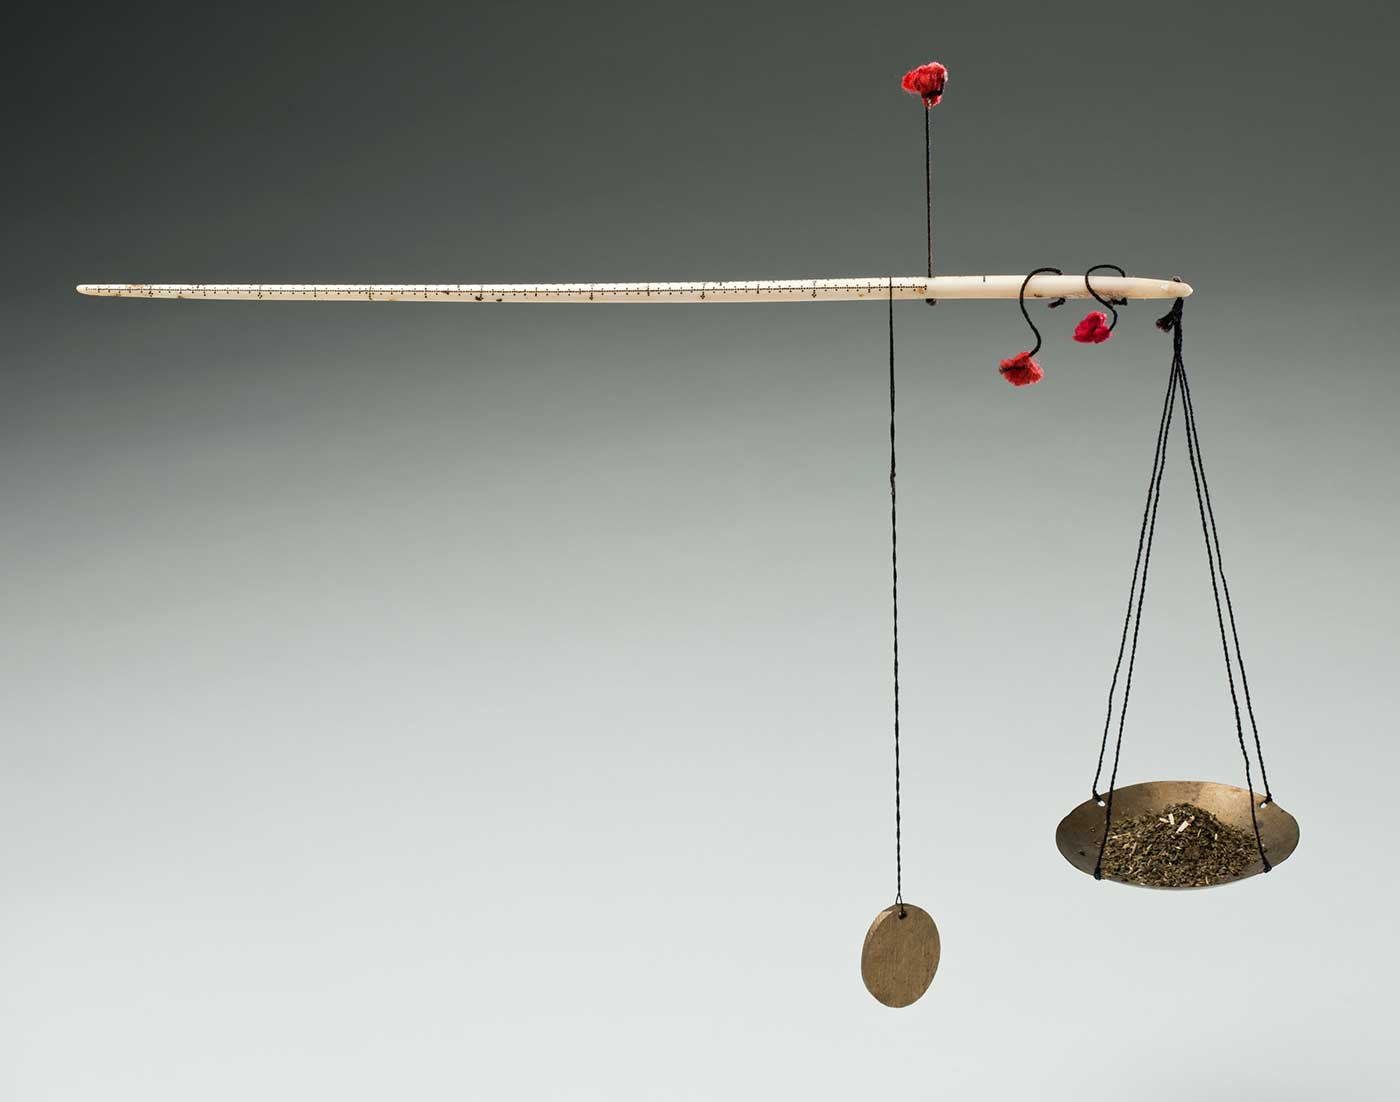 Colour photograph of a set of small scales with a long white rod at top and a small disc hanging at one end, alongside a suspended concave tray. Small pieces of a gold-coloured substance are piled on the tray.  - click to view larger image